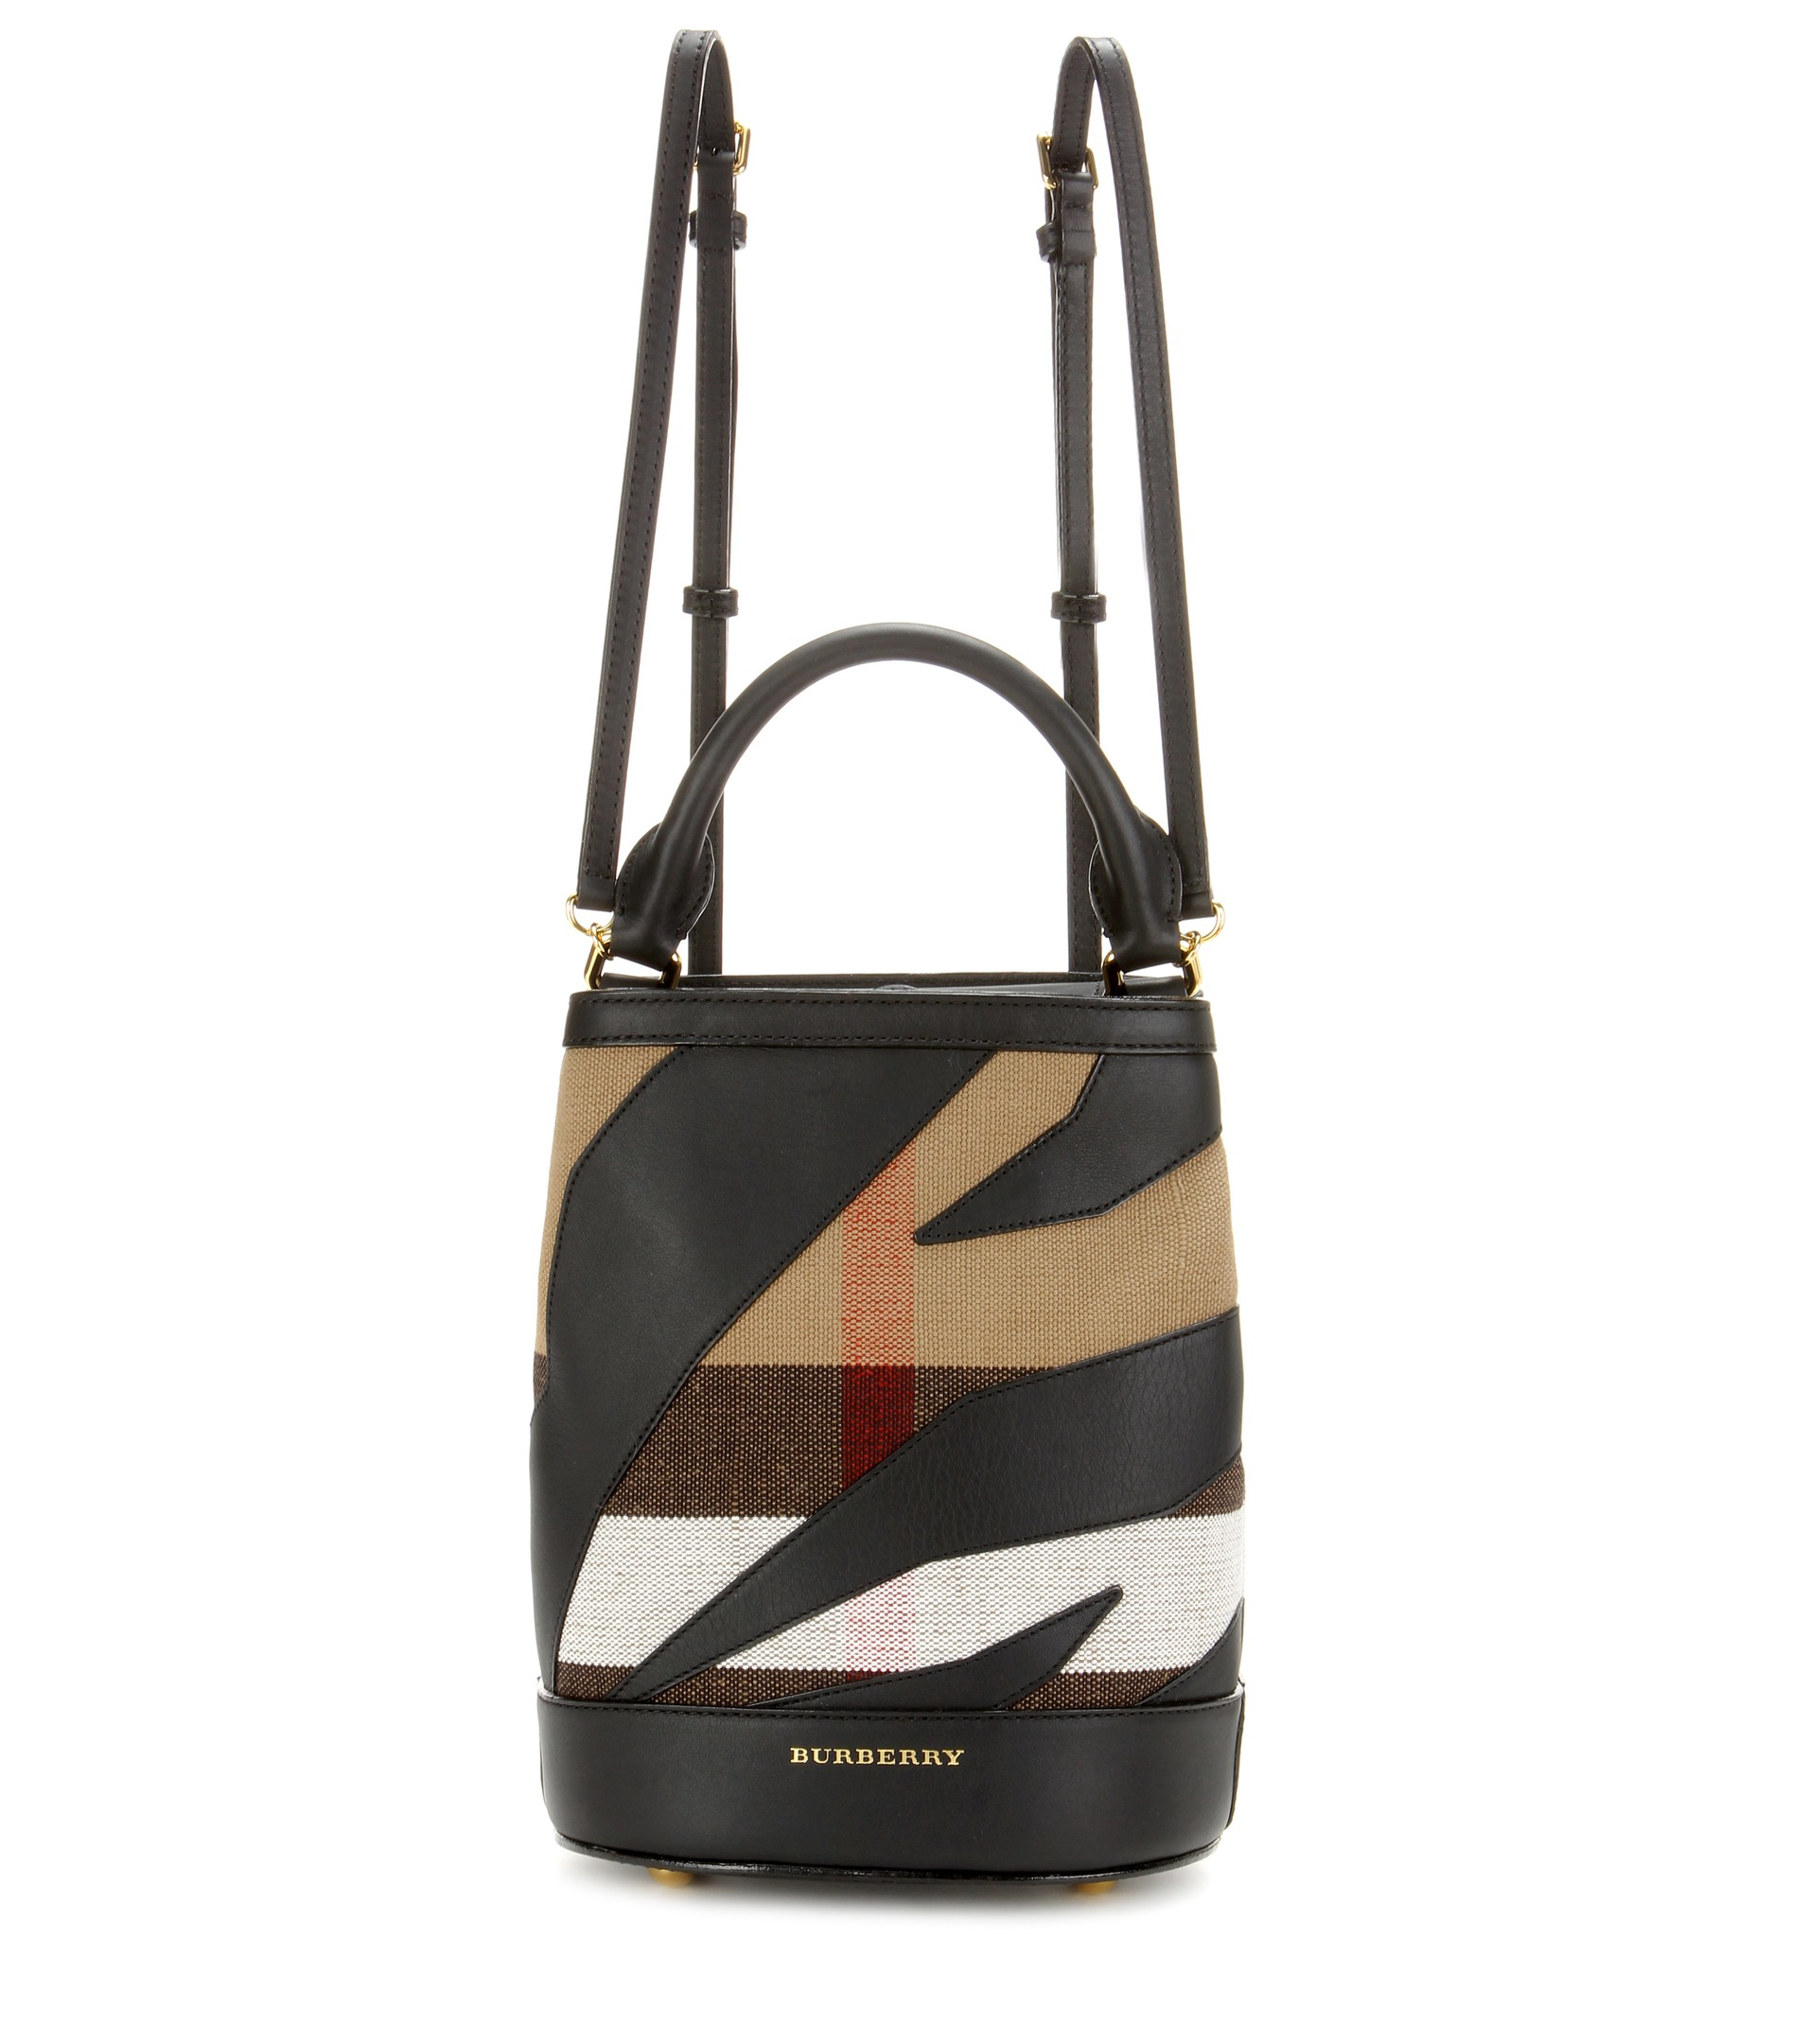 Burberry prorsum Leather-trimmed Check Backpack in Black ...